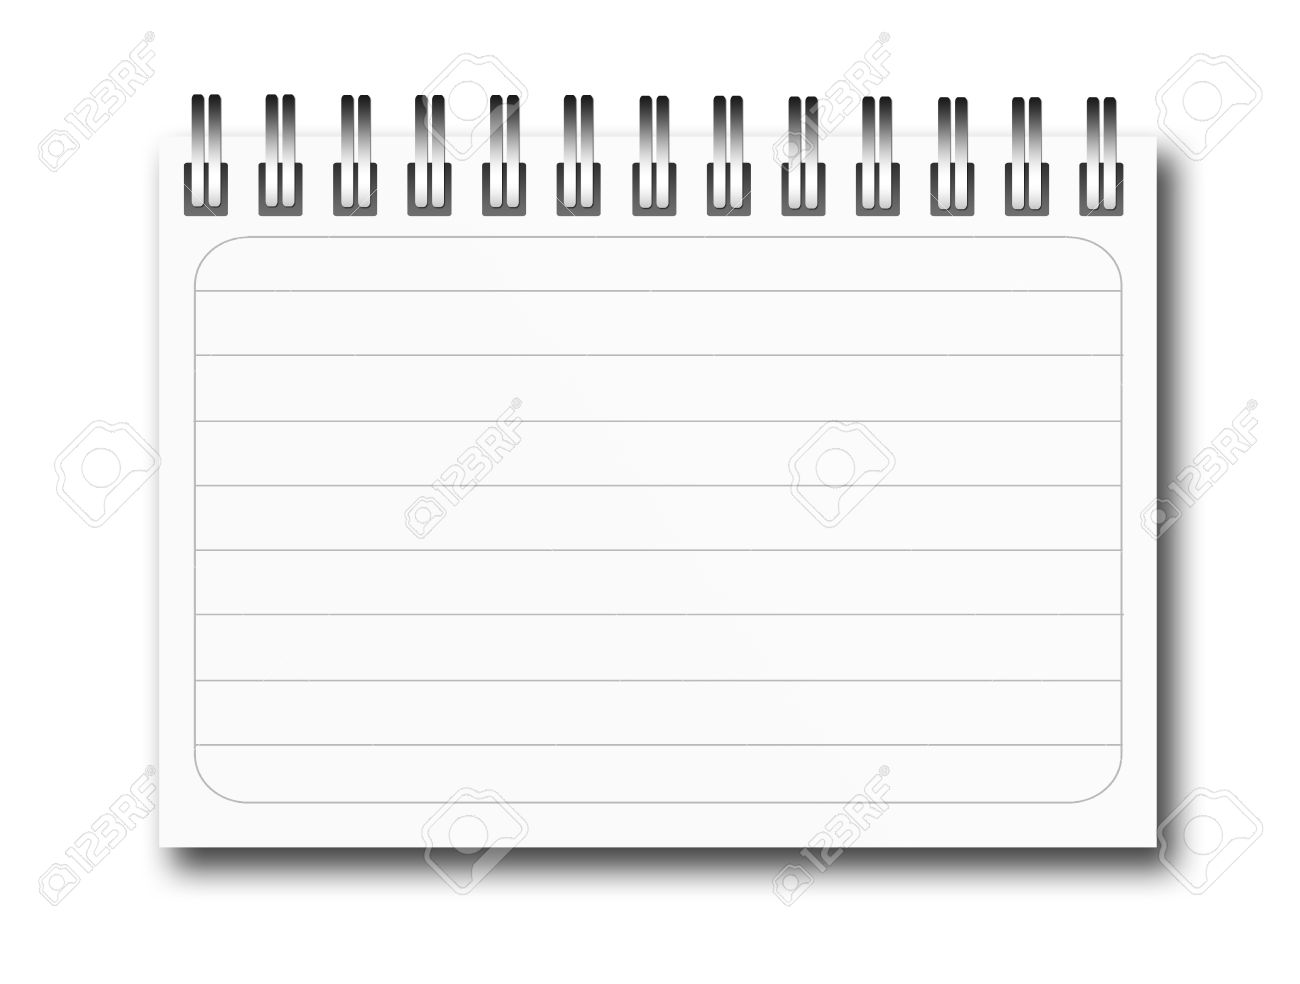 White Ring Notebook With Lines, Empty. Ready To Insert Text Or ...